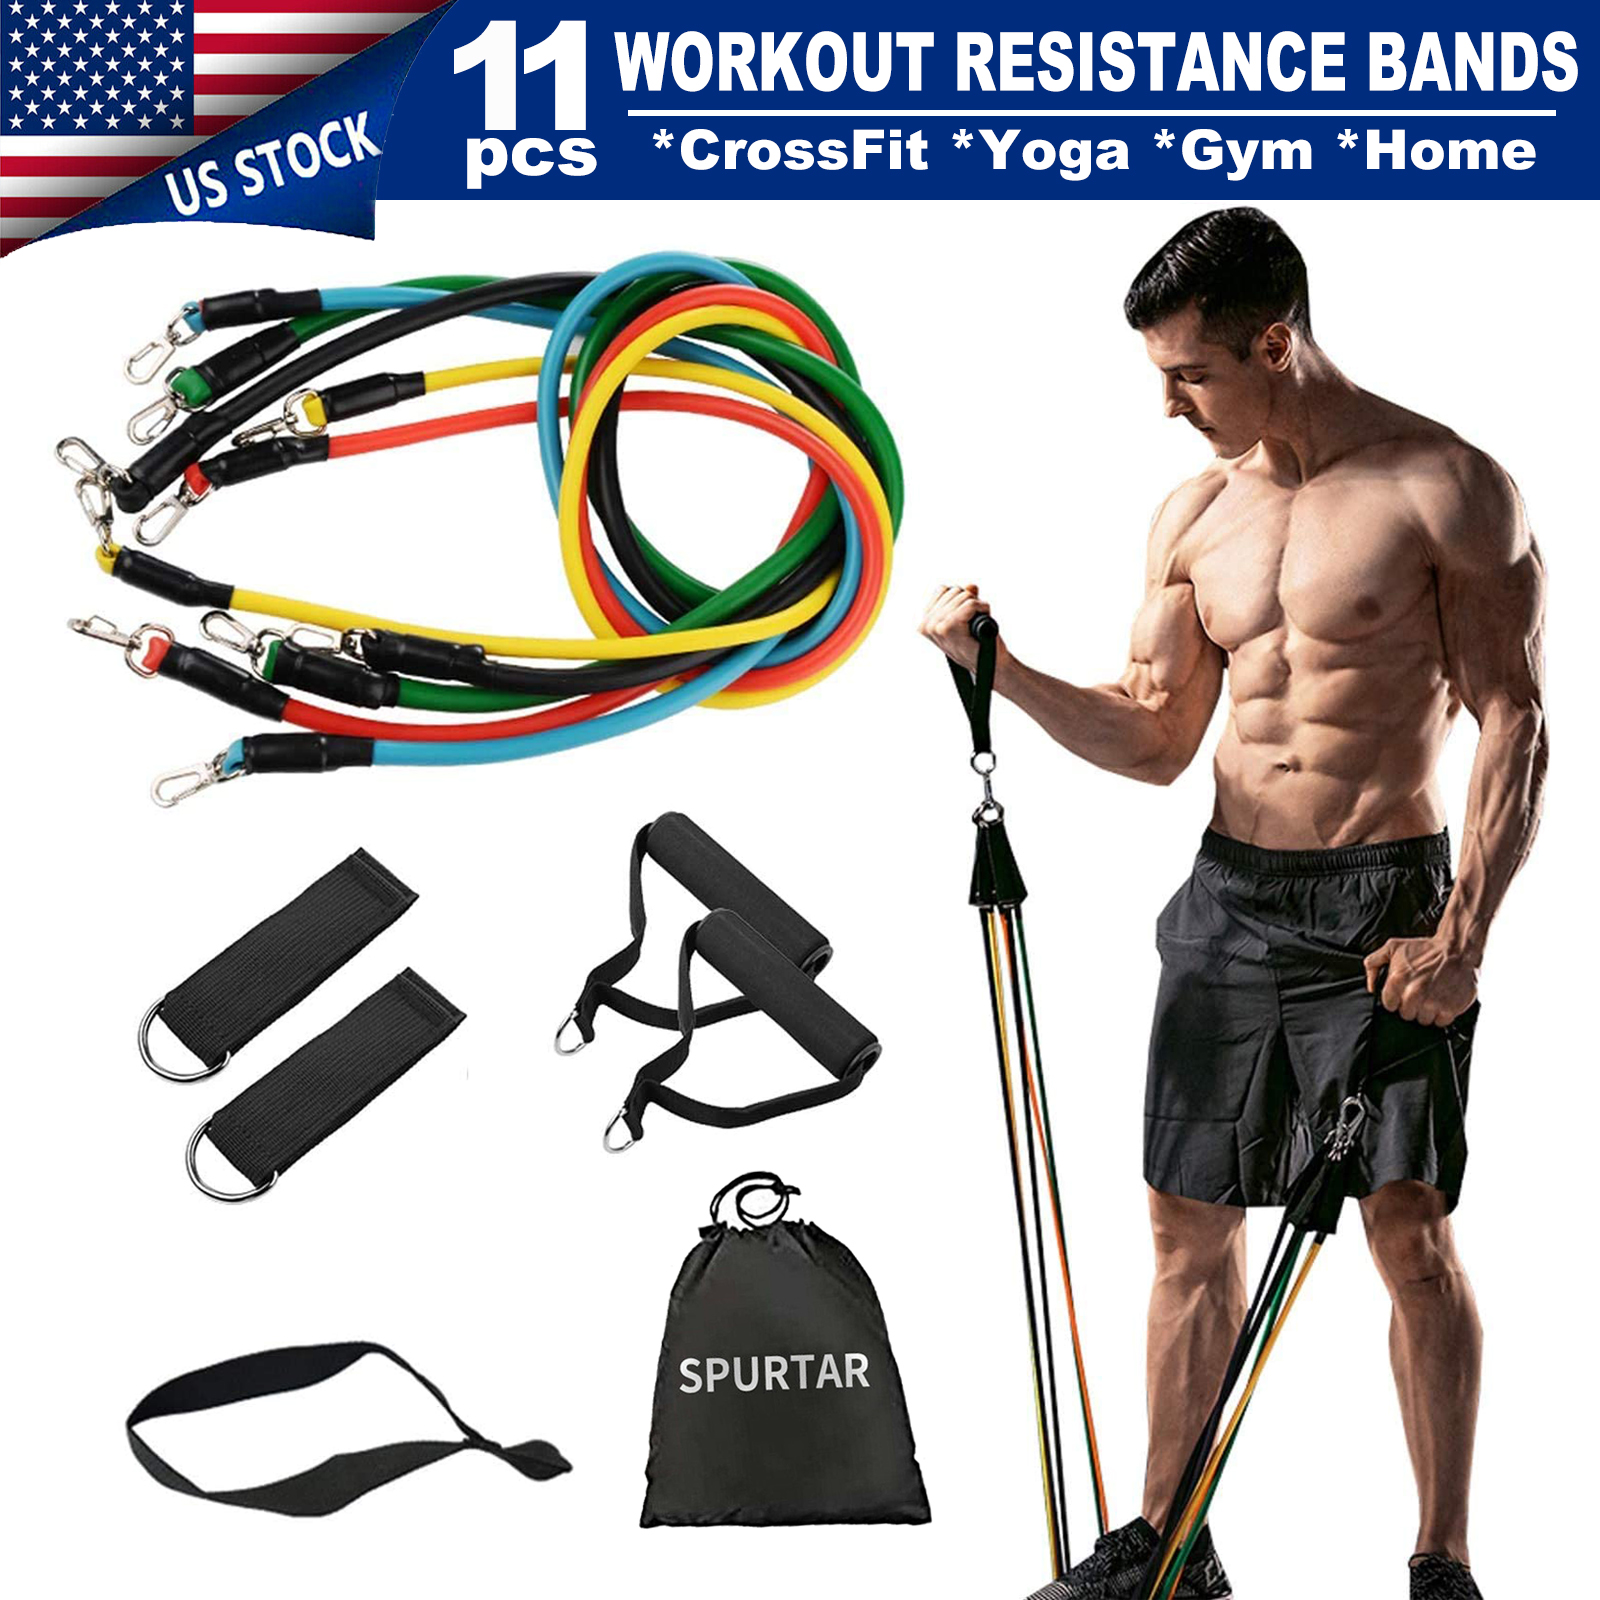 Workout Bands 11Pc Set Yoga Pilates Home Exercise crossFit Residence Band Gym